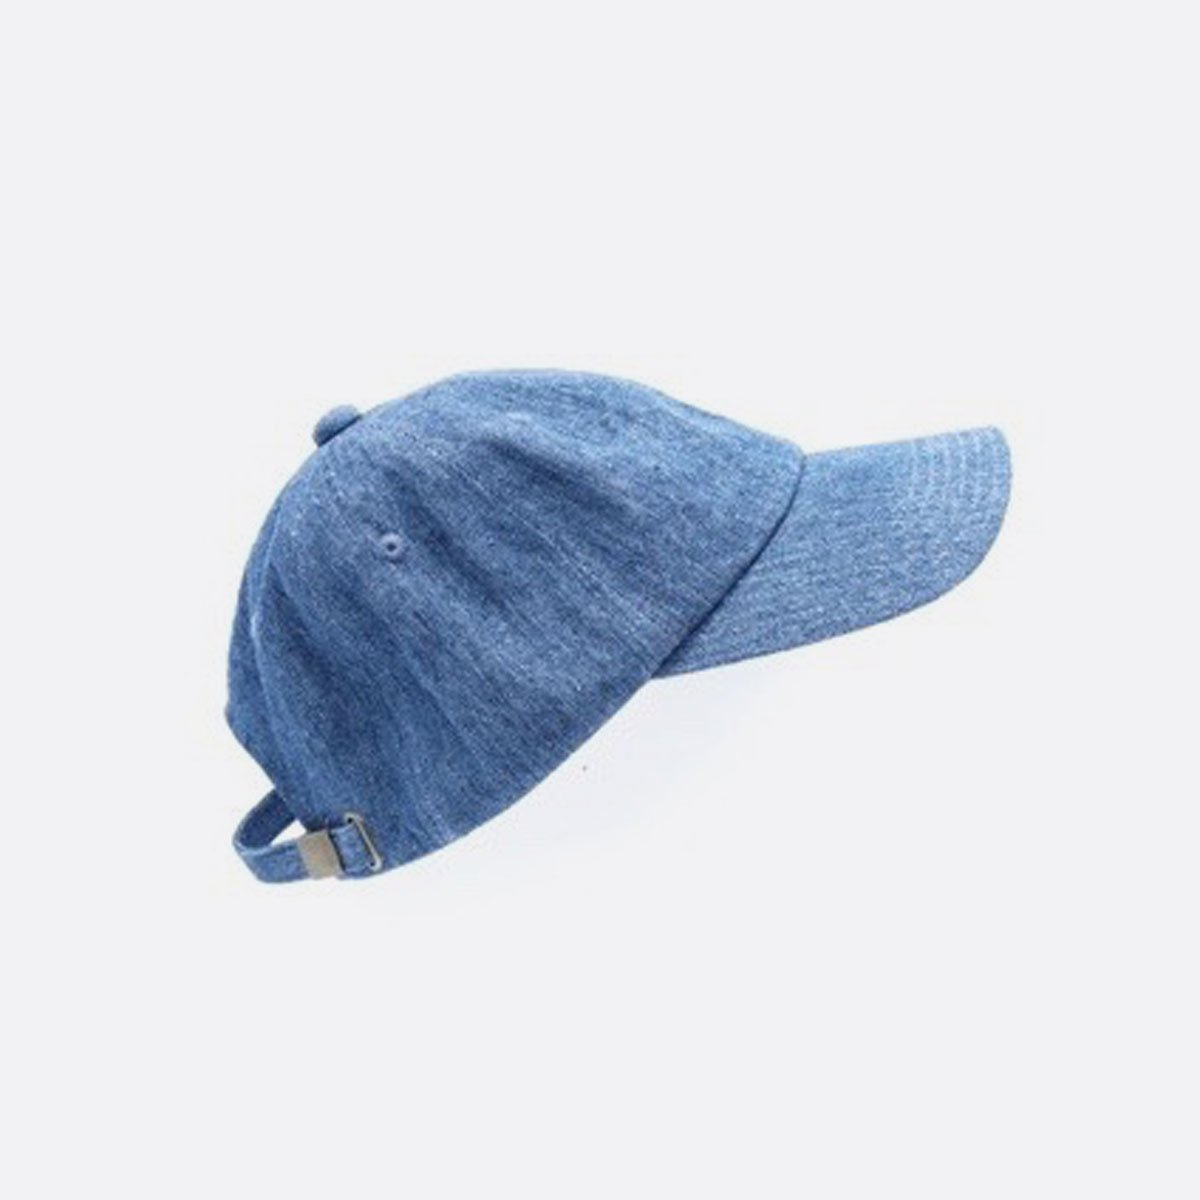 niuhans  Irish Linen Cotton Denim Baseball Cap (Light Indigo)